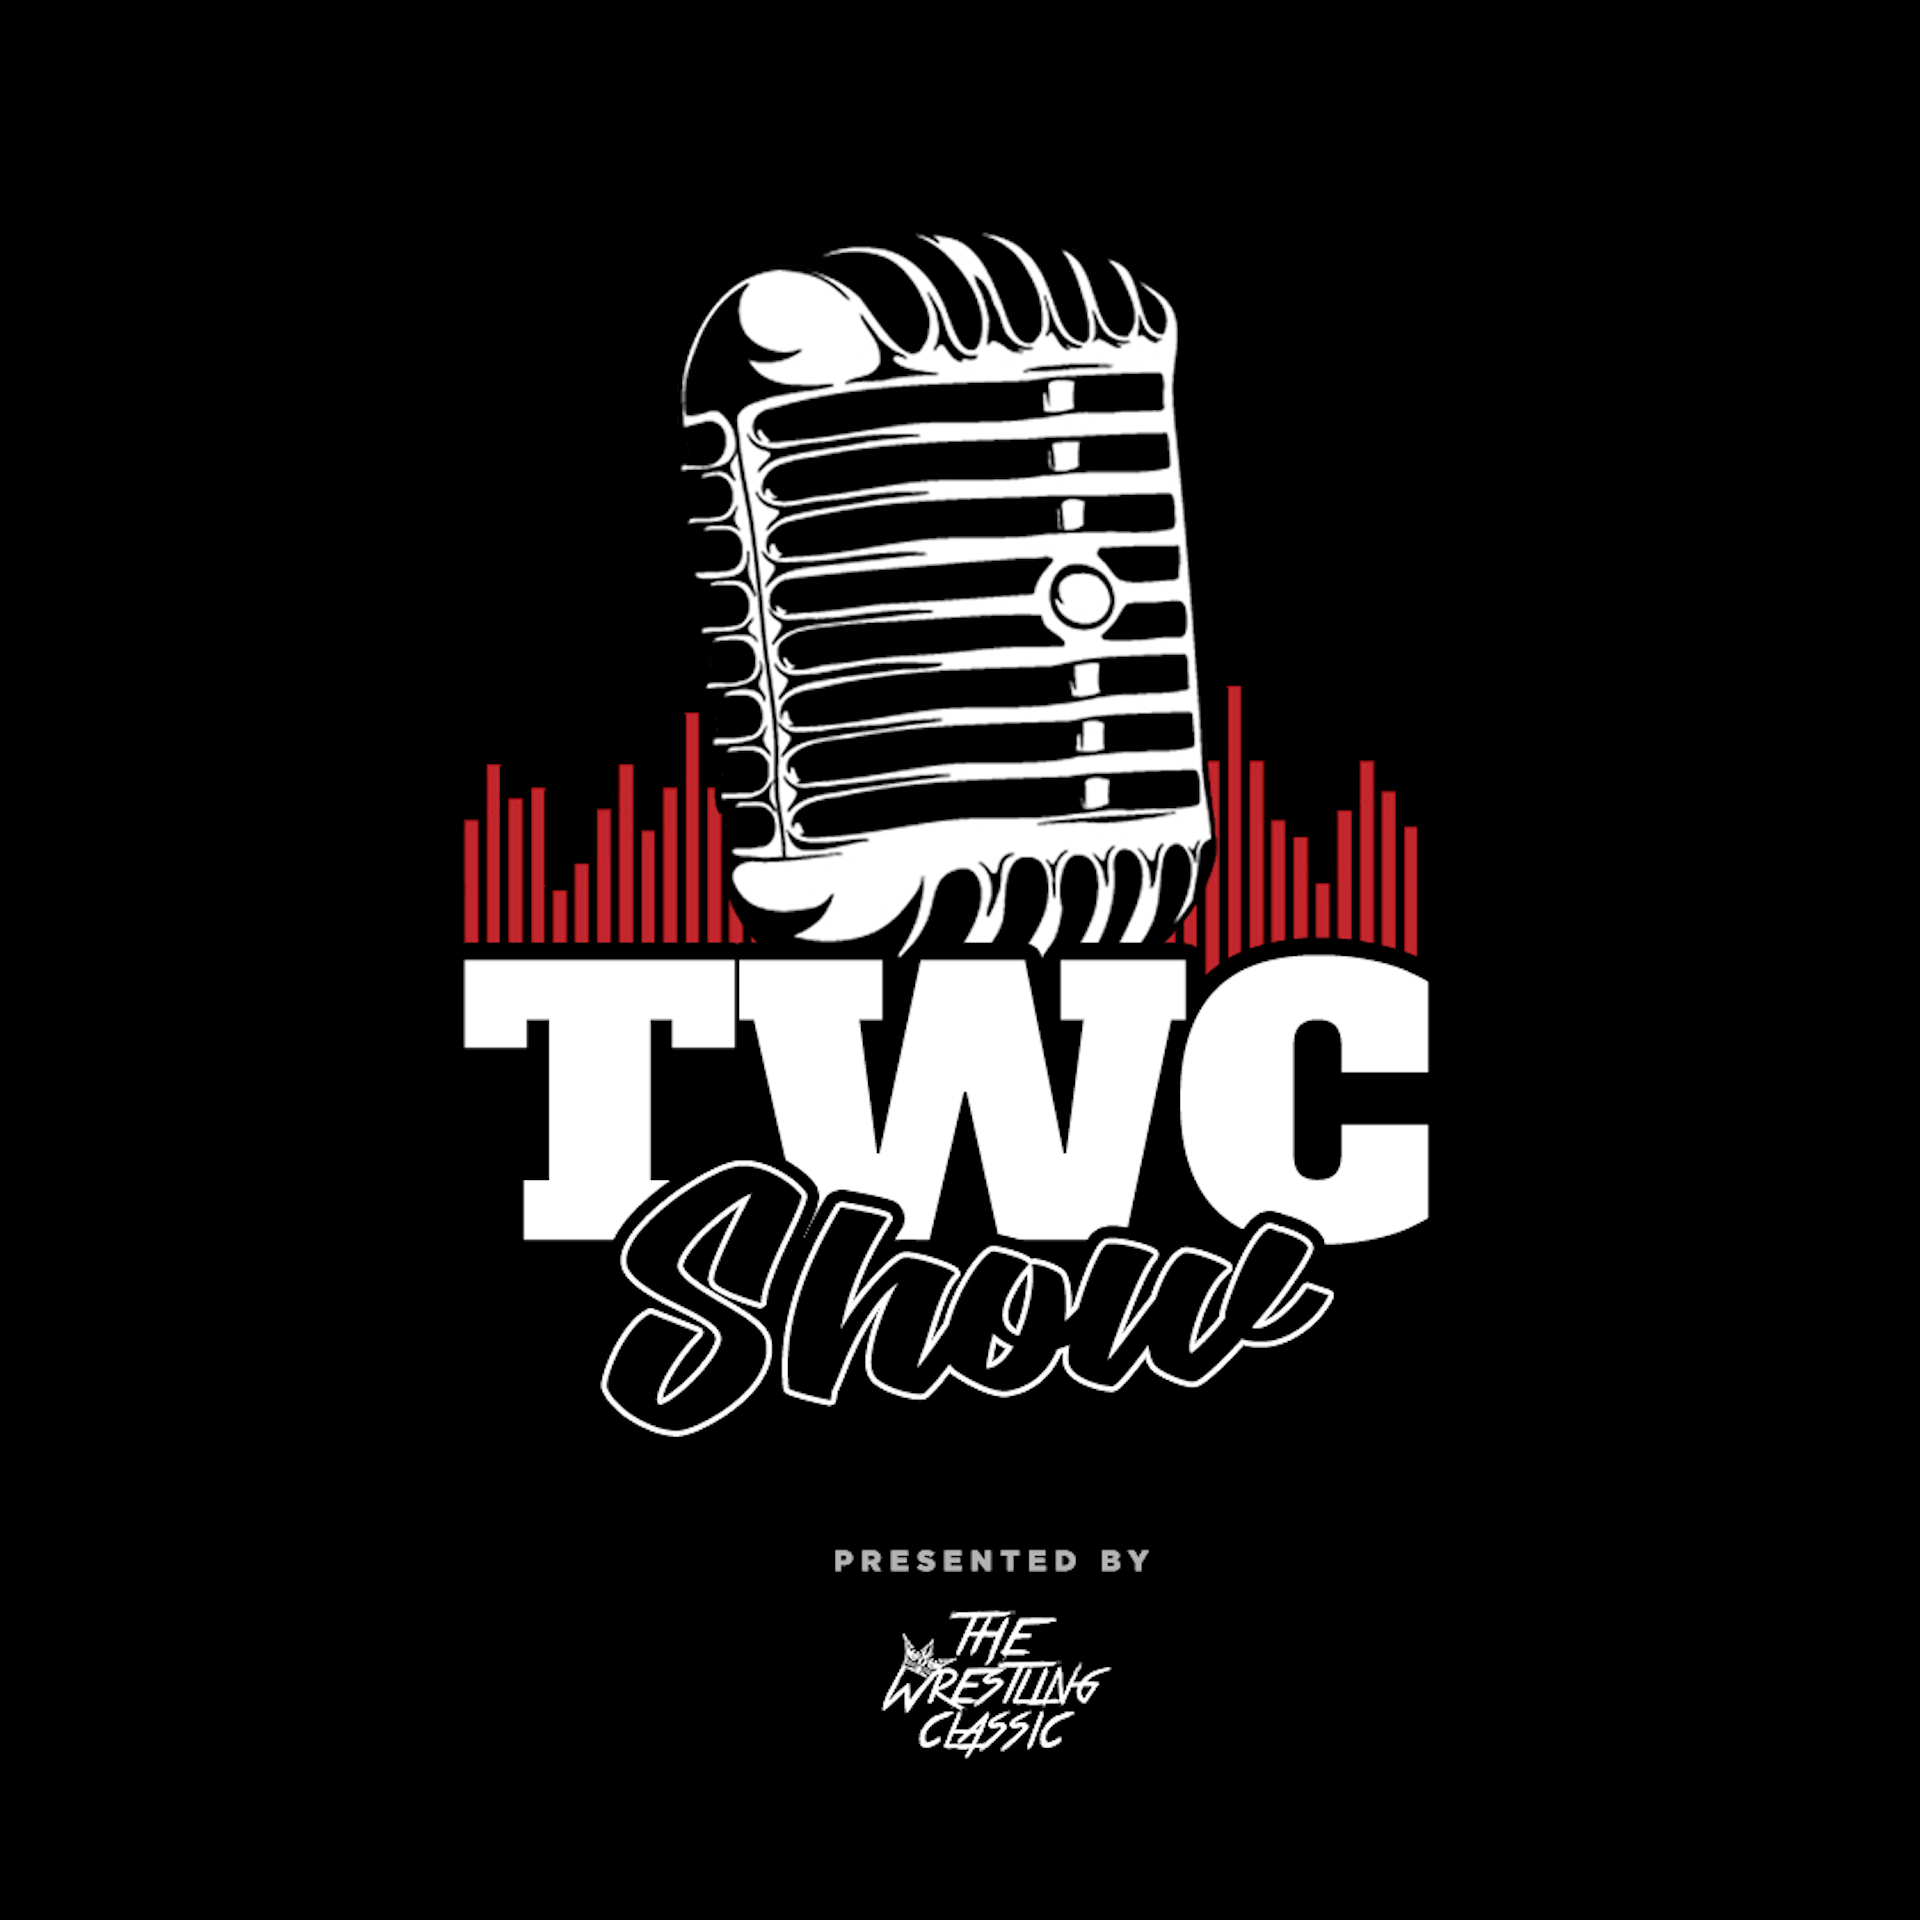 TWC Show Episode 11 – A Dynamite Week of Wrestling! AEW vs. NXT and Raw's Season Premiere